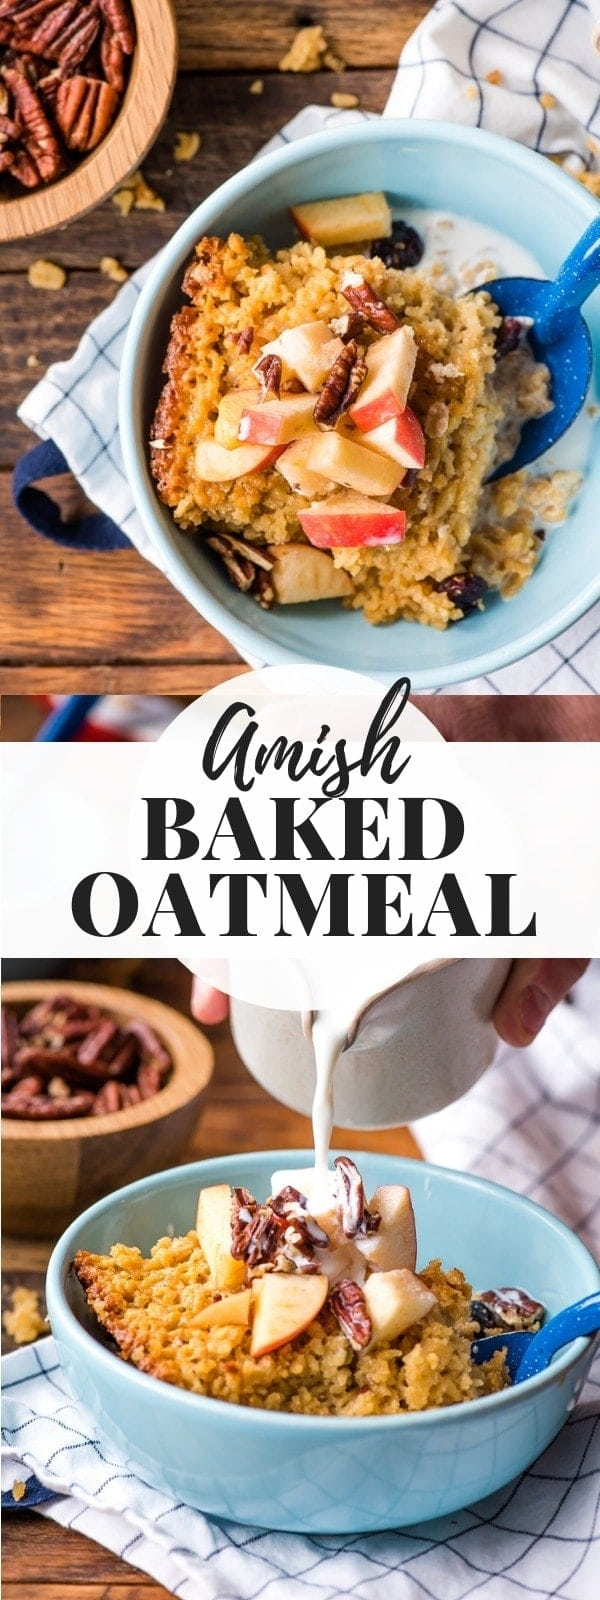 This hearty Amish Baked Oatmeal is the most comforting way to kick start a chilly morning! It's easy to make and freezer friendly! #easybreakfast #makeaheadbreakfast #bakedoatmeal #oatmealrecipe